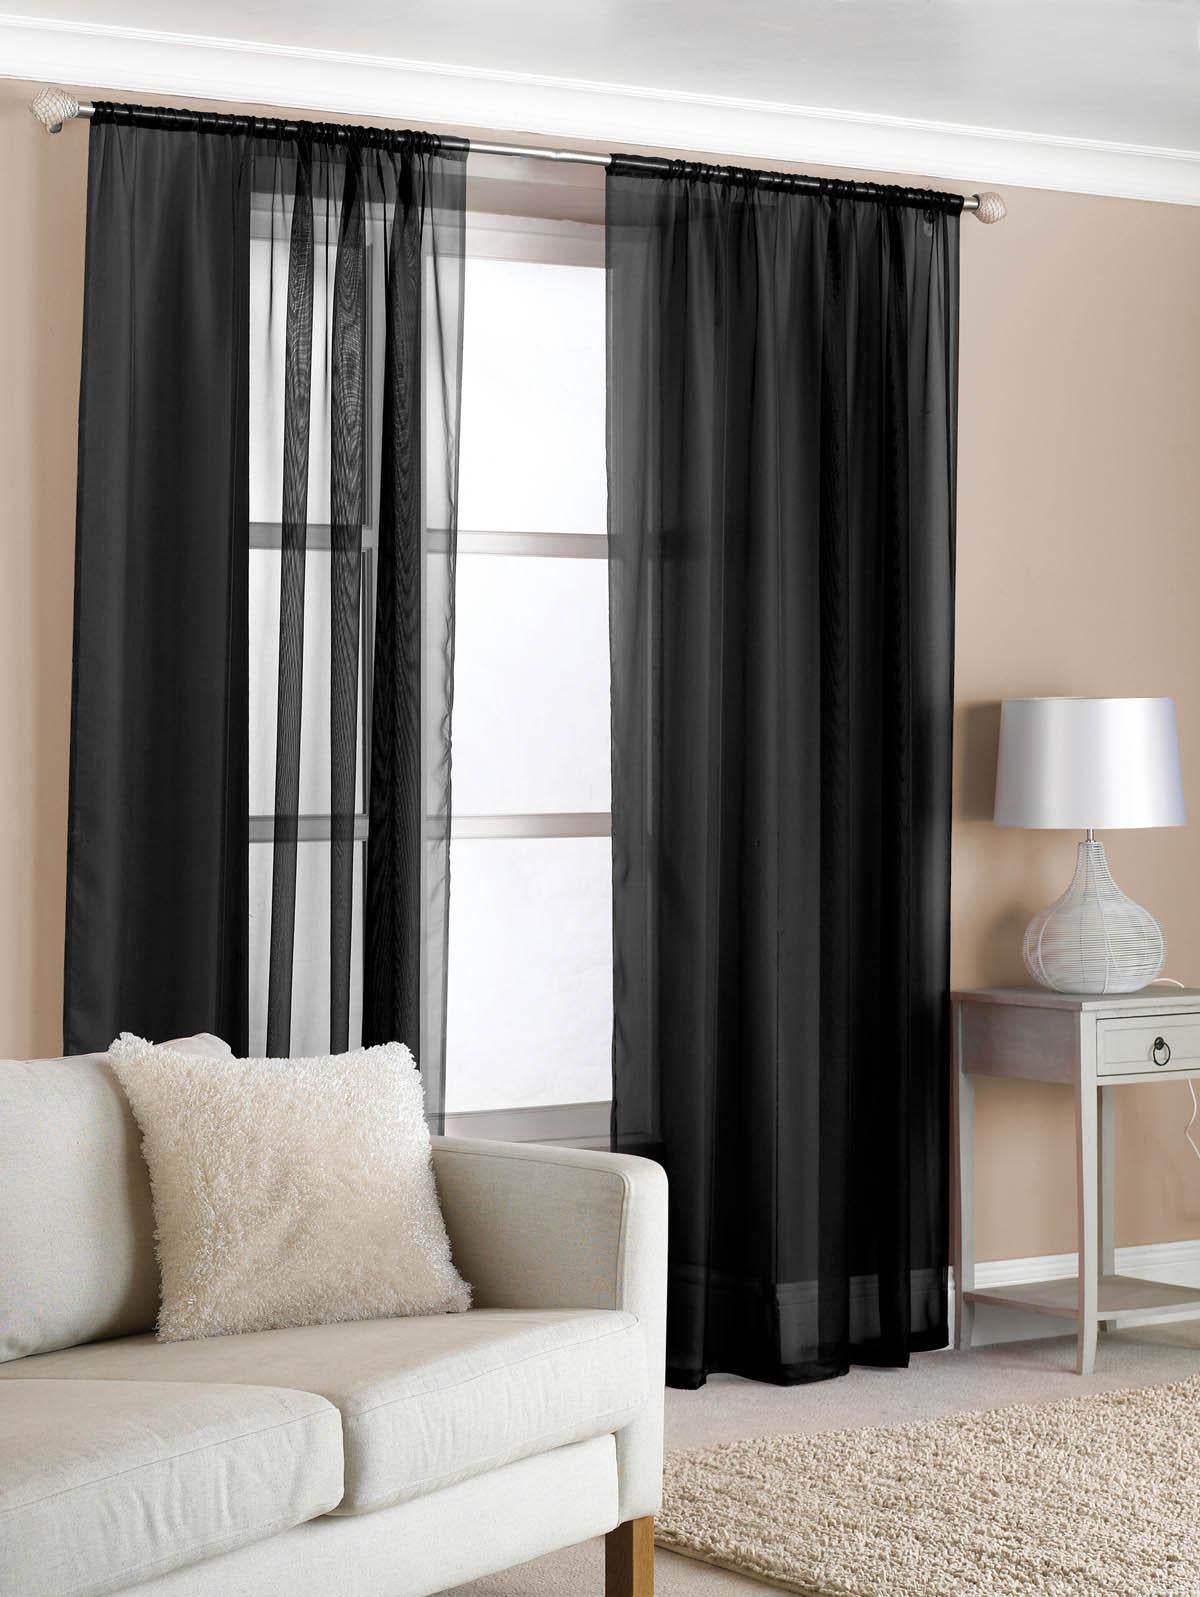 Beamfeature Ready Made Curtains Slot Top Voile (Pair) Black Picture